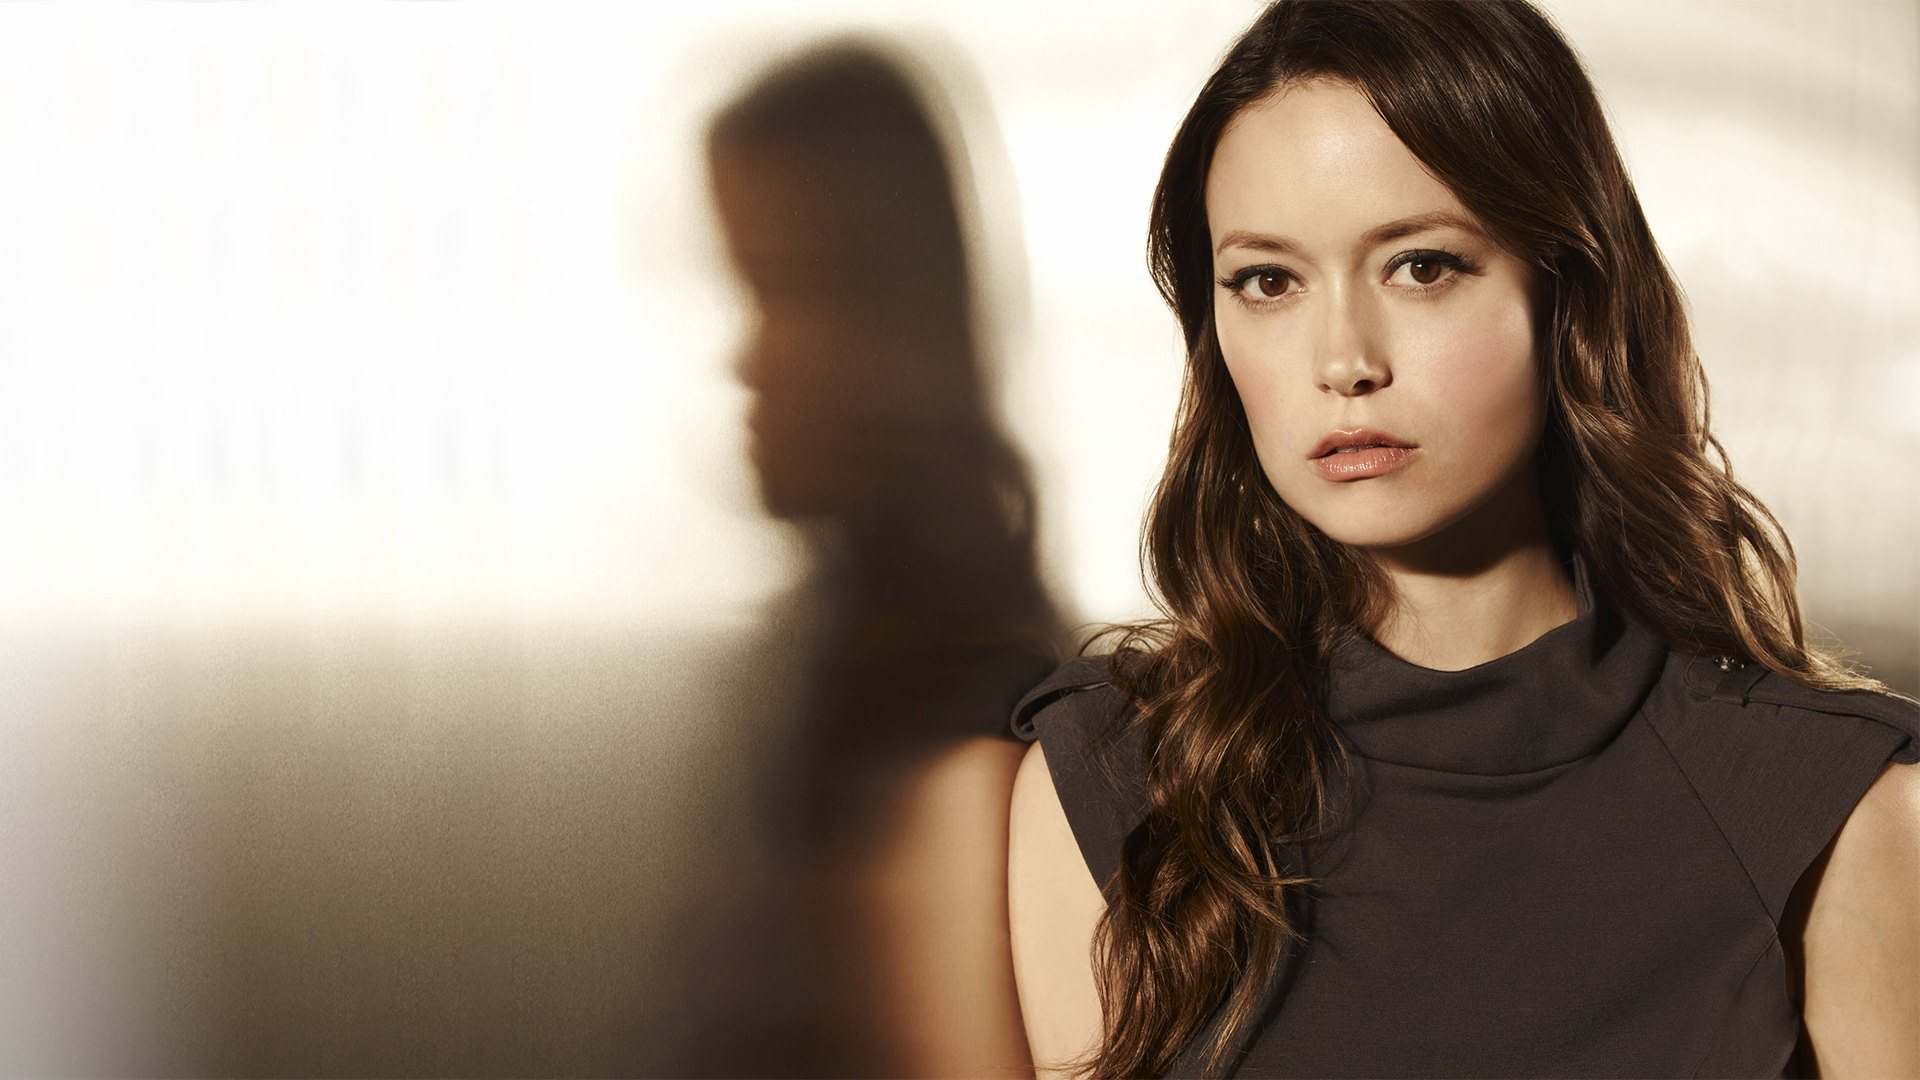 summer glau wallpaper background